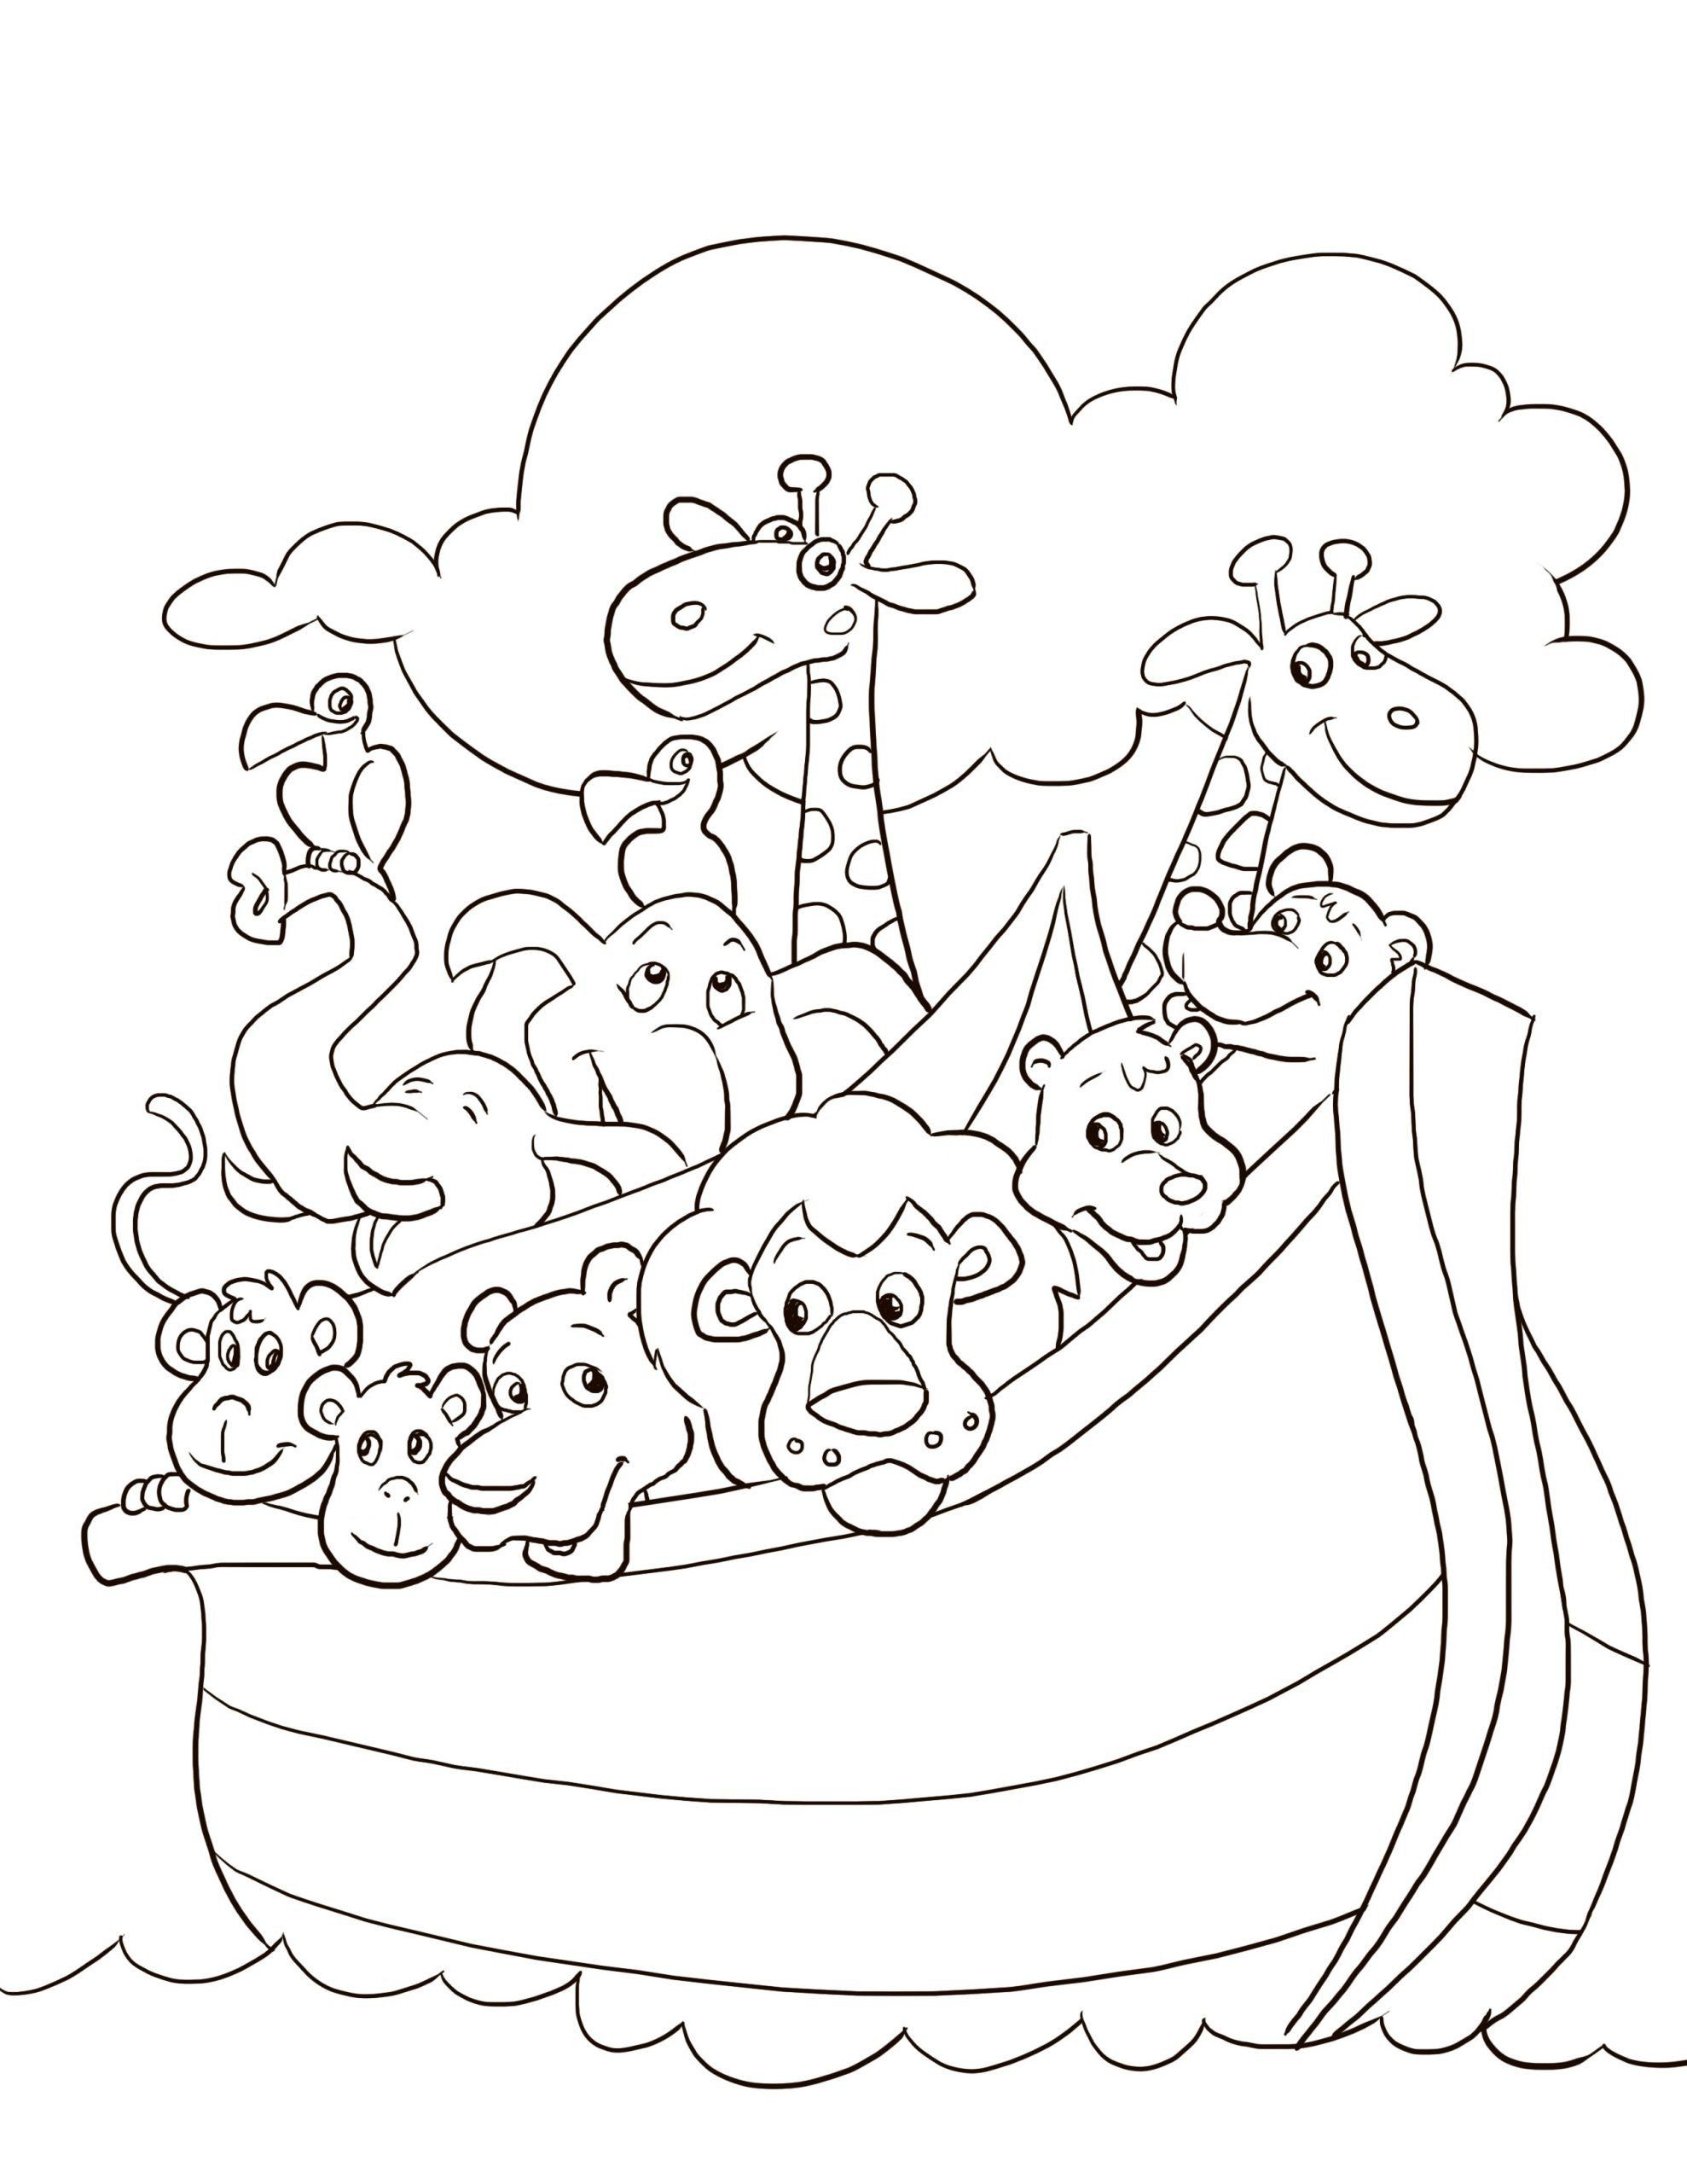 Bible Coloring Pages For Kids 831db9a9f8438c6df8383f36fcdbcb7c Kids Bible Coloring Pages Bible Coloring Pages Sunday School Coloring Pages Christian Coloring [ 2560 x 1978 Pixel ]